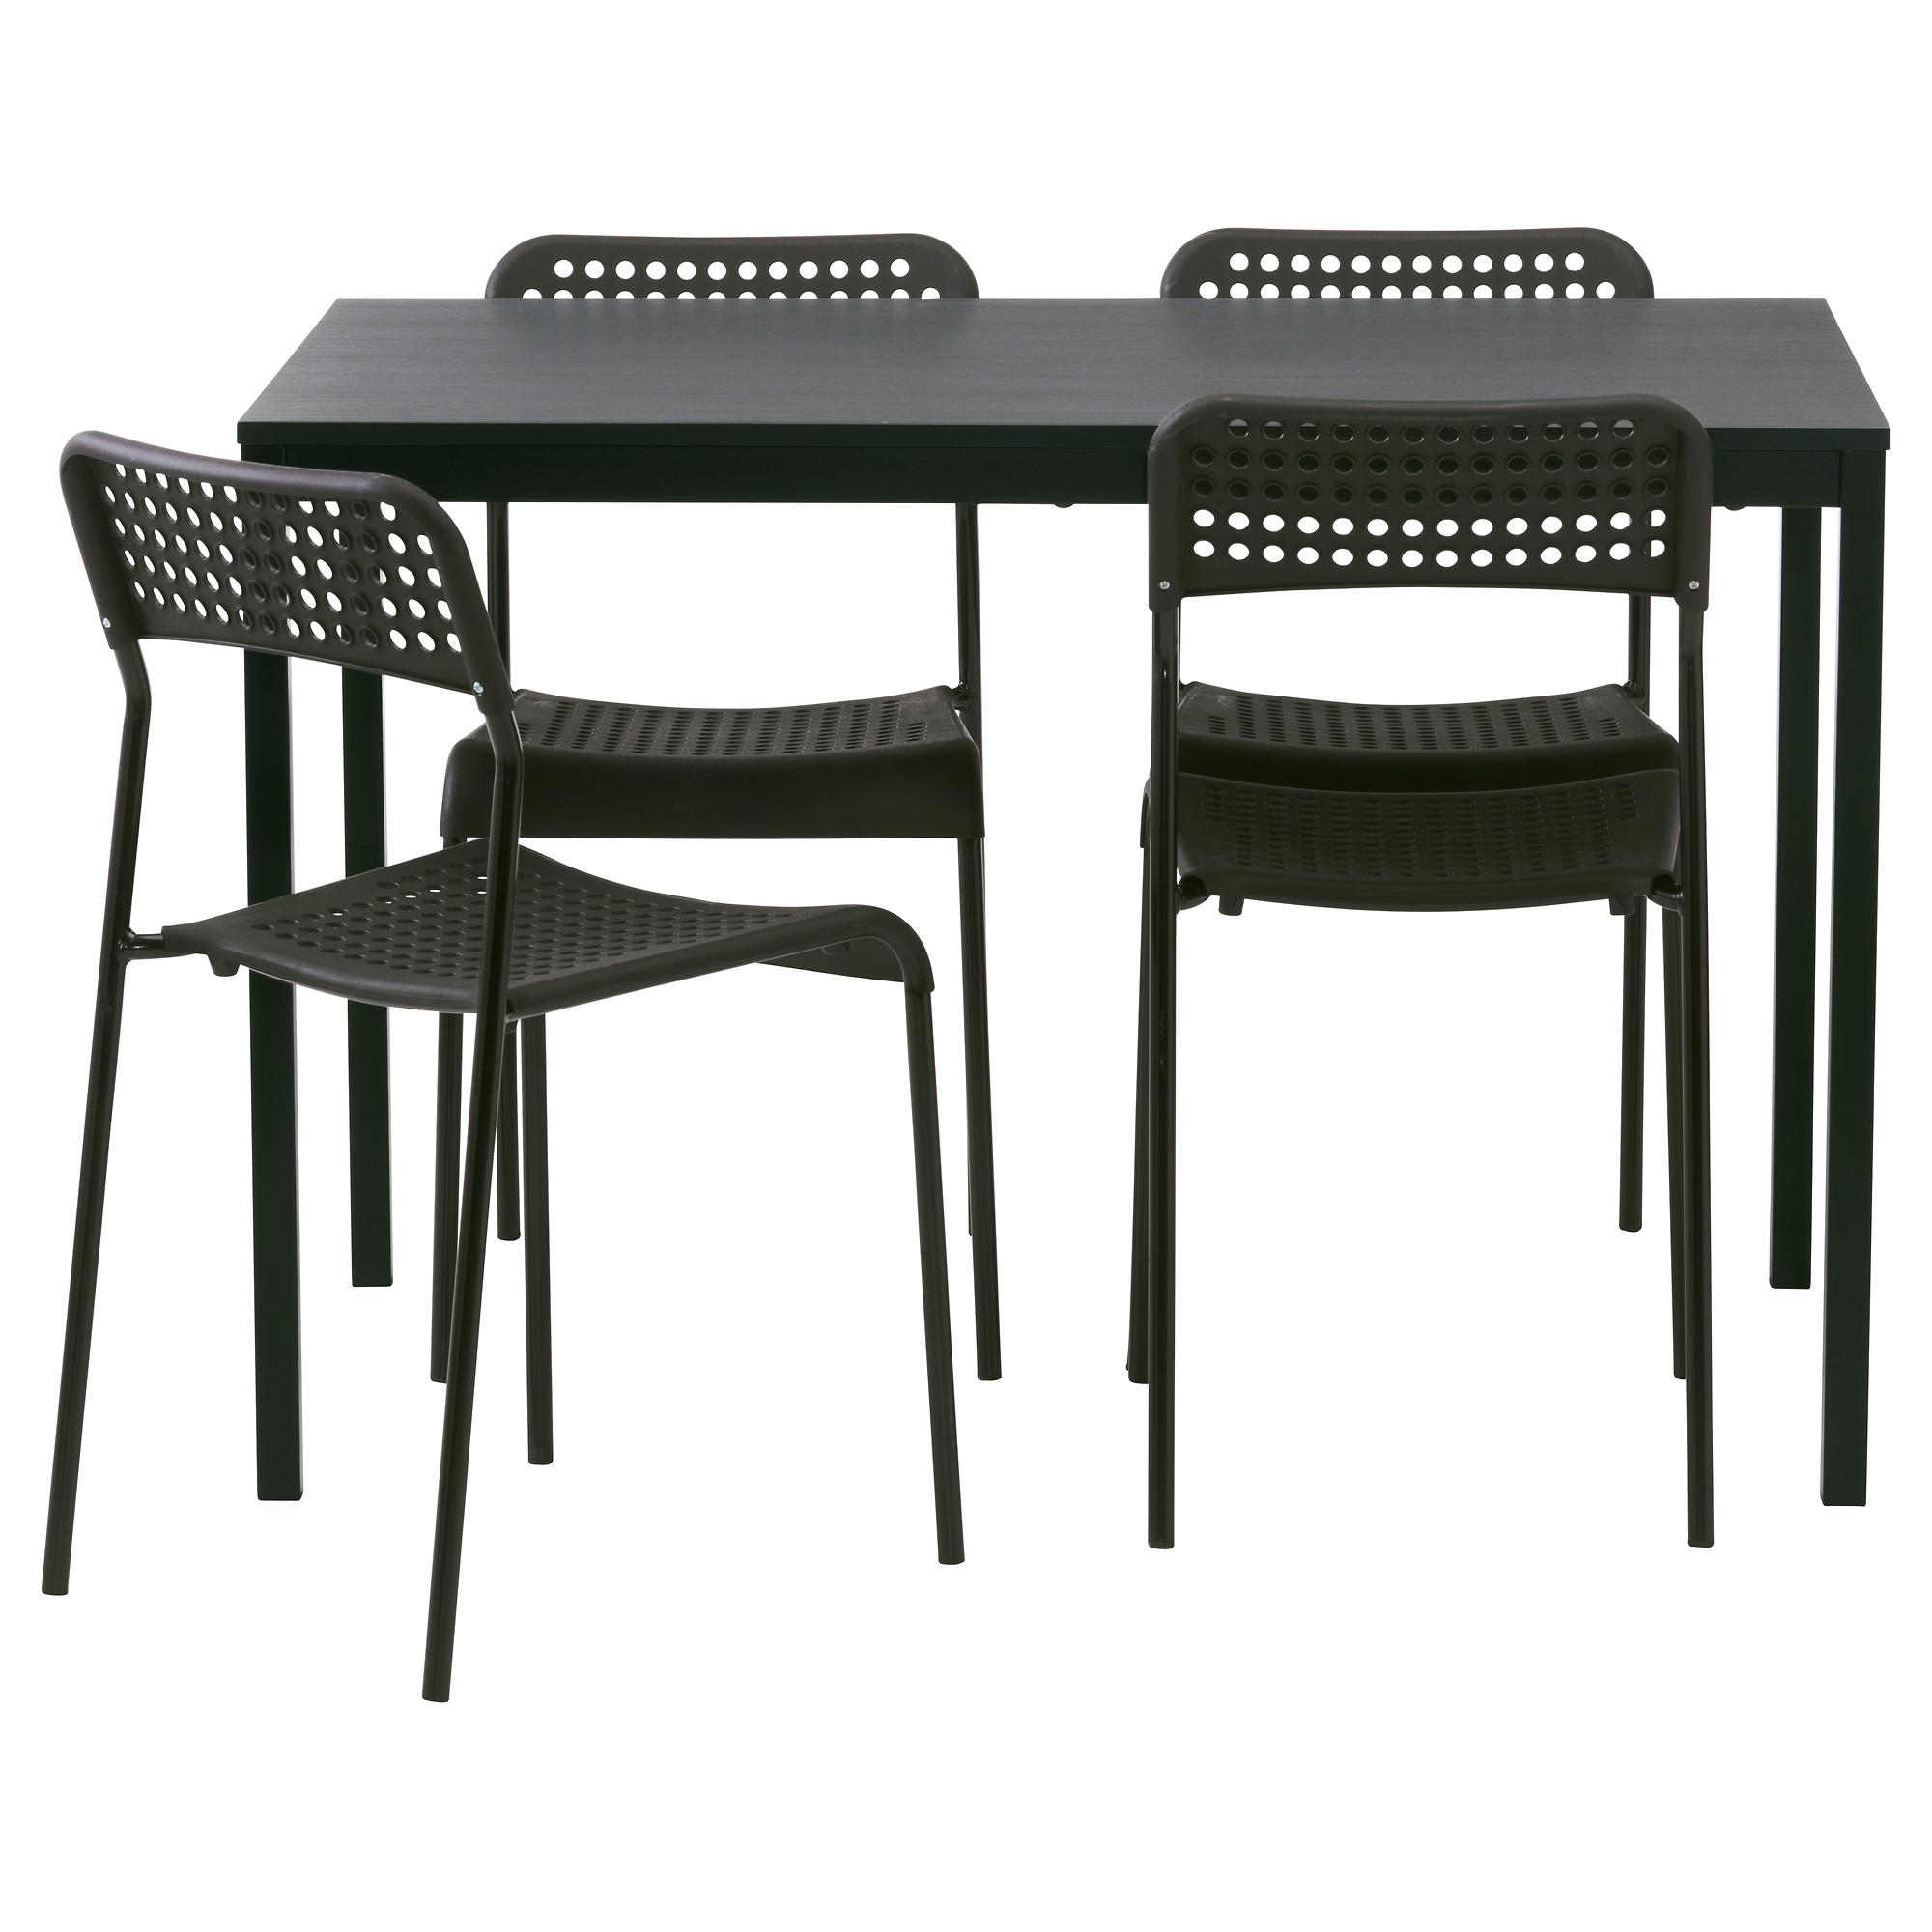 TREND ADDE Table And 4 Chairs Black Length 43 1